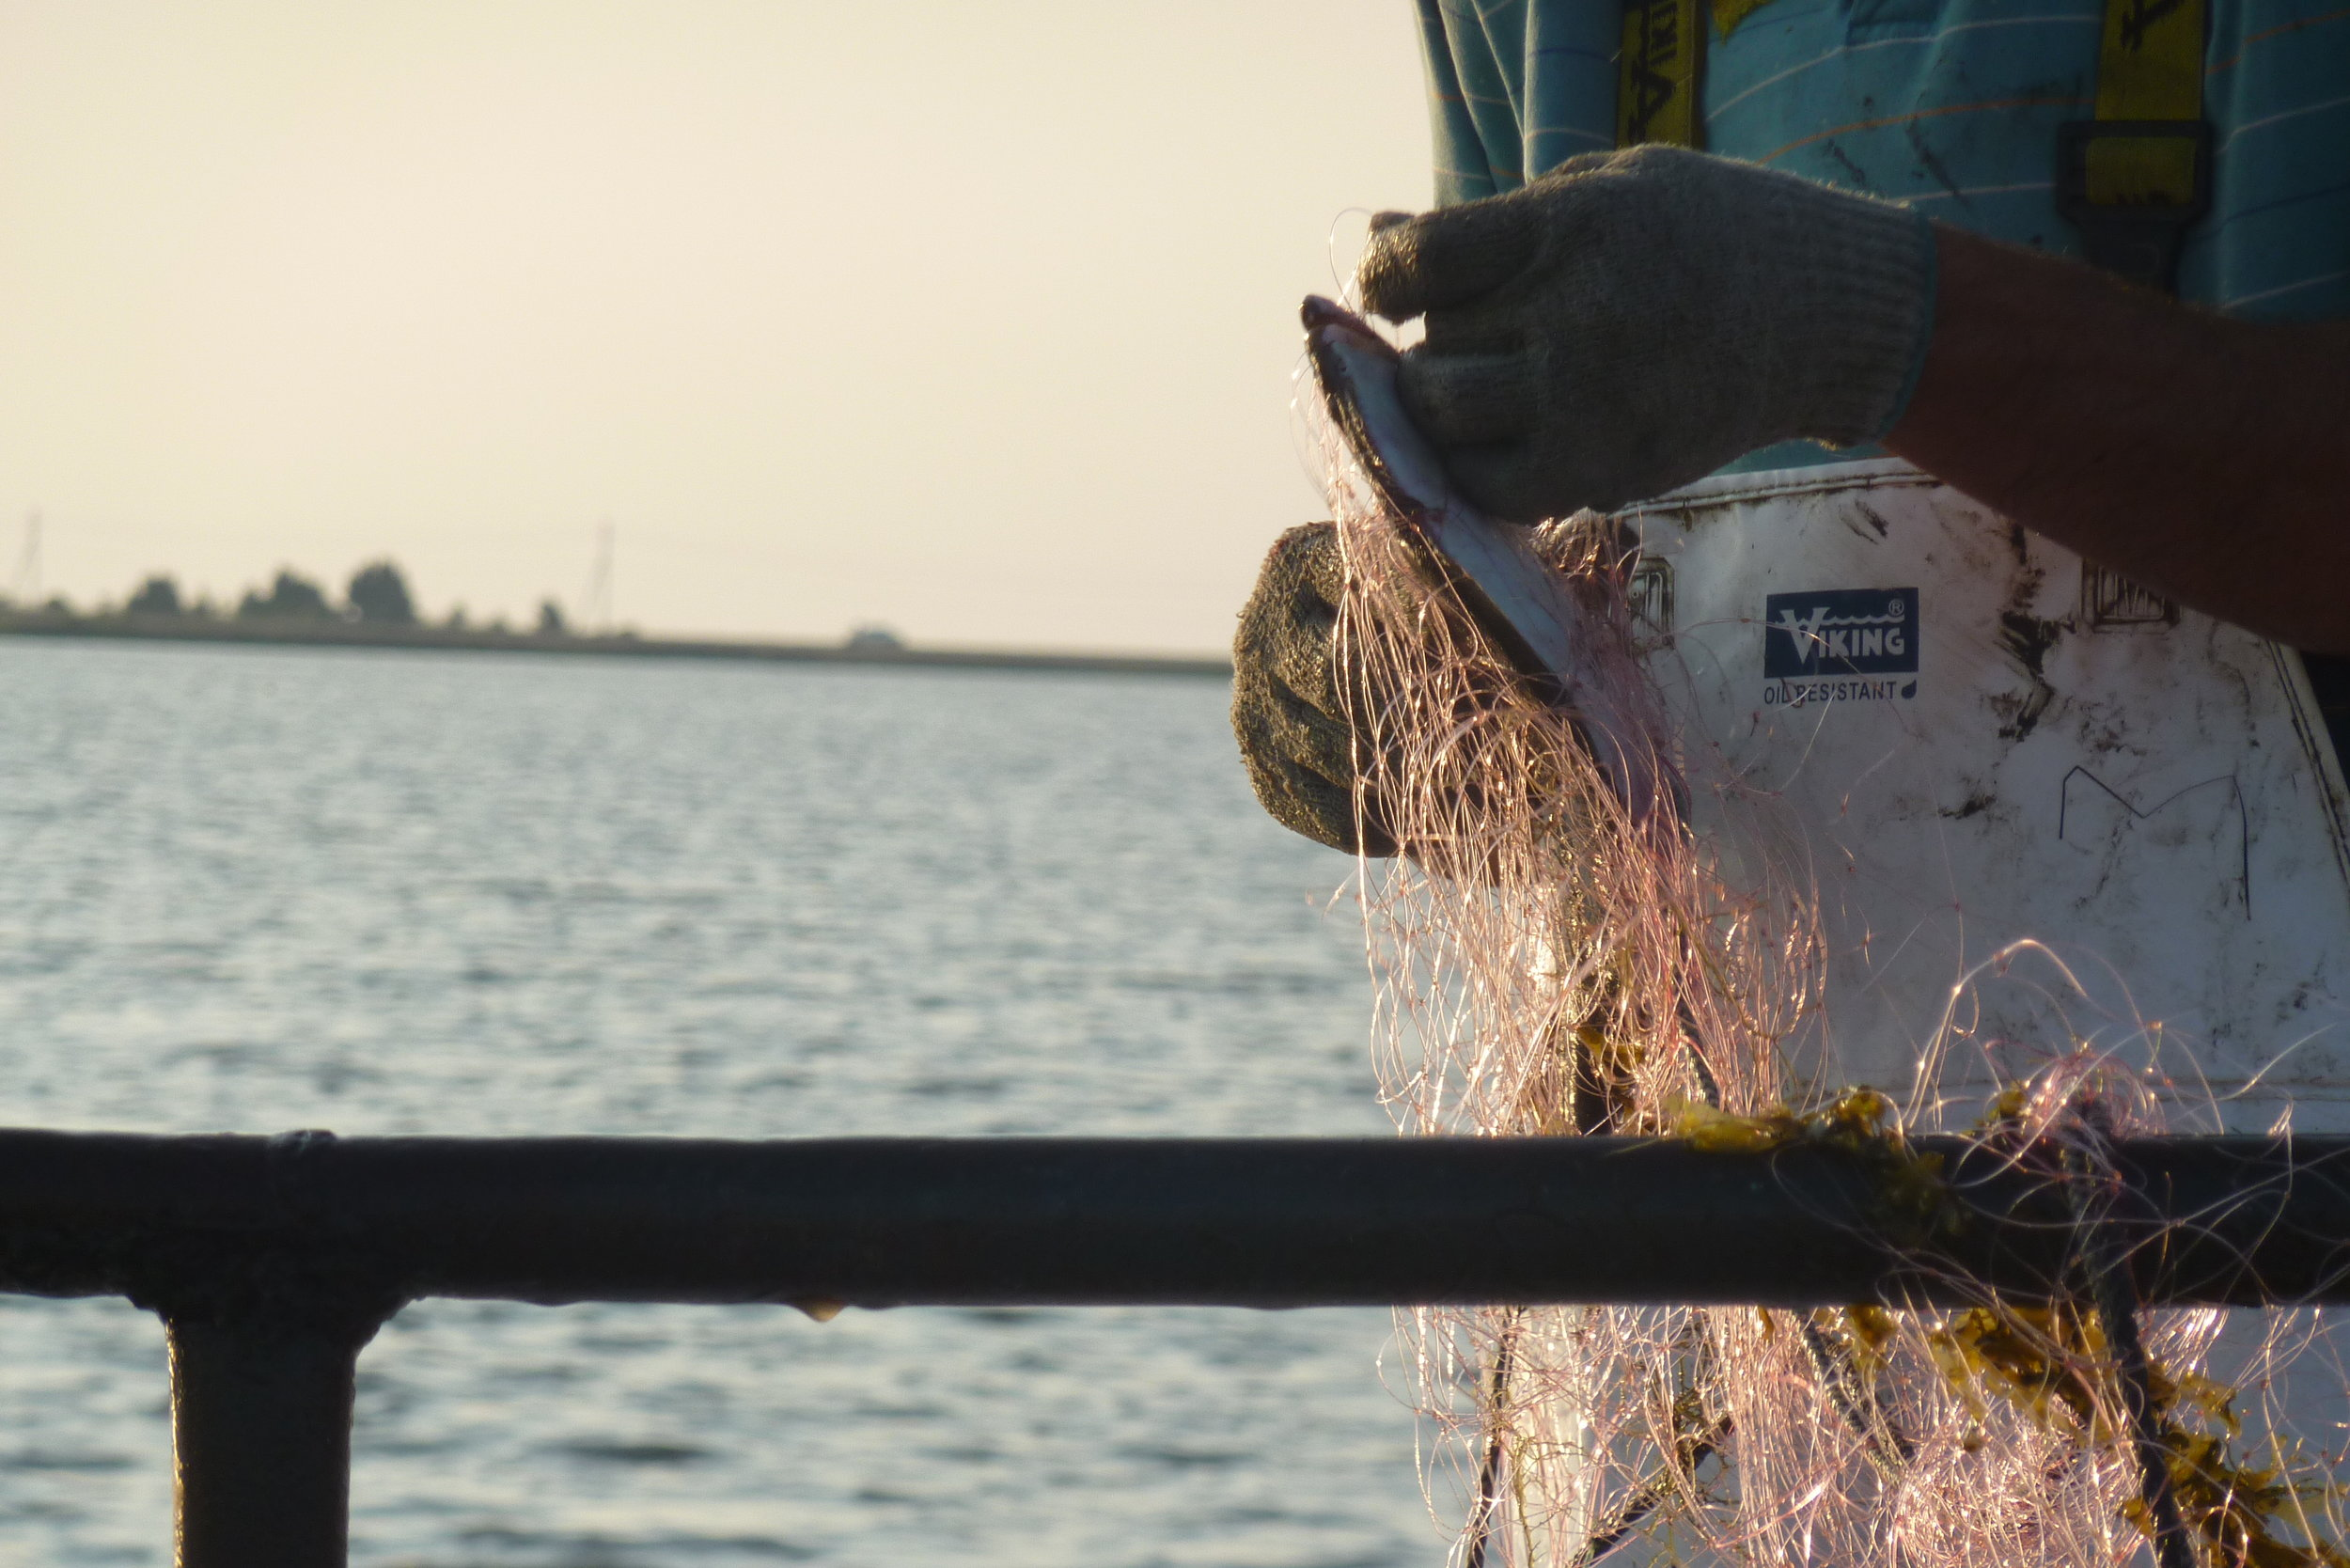 Gill-netting for flounder. Commercial fishing is longstanding part of NC coastal communities and economies; it is also often a small-scale endeavor. Here a commercial fisherman removes a flounder from his gill net. (Photo: L. Fairbanks)